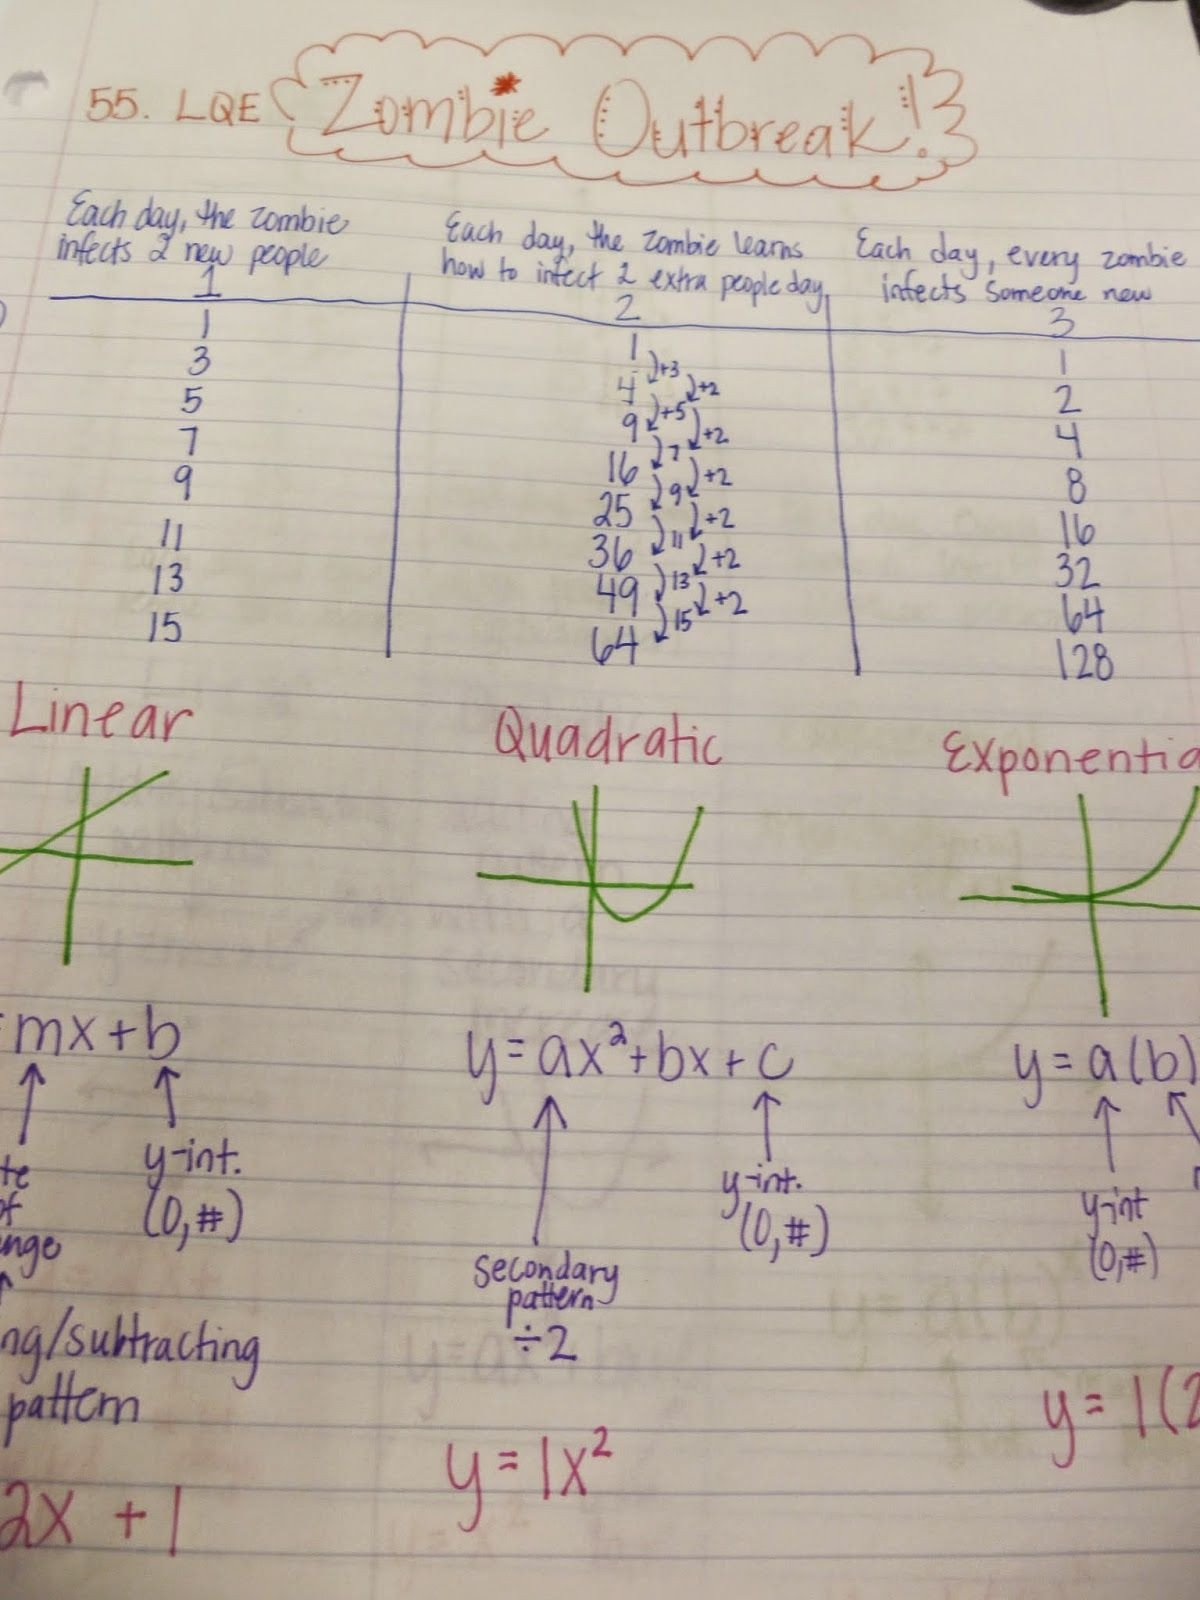 Linear Quadratic Exponential Tables Worksheet Learning with Tape Friday Freebies Paring Linear